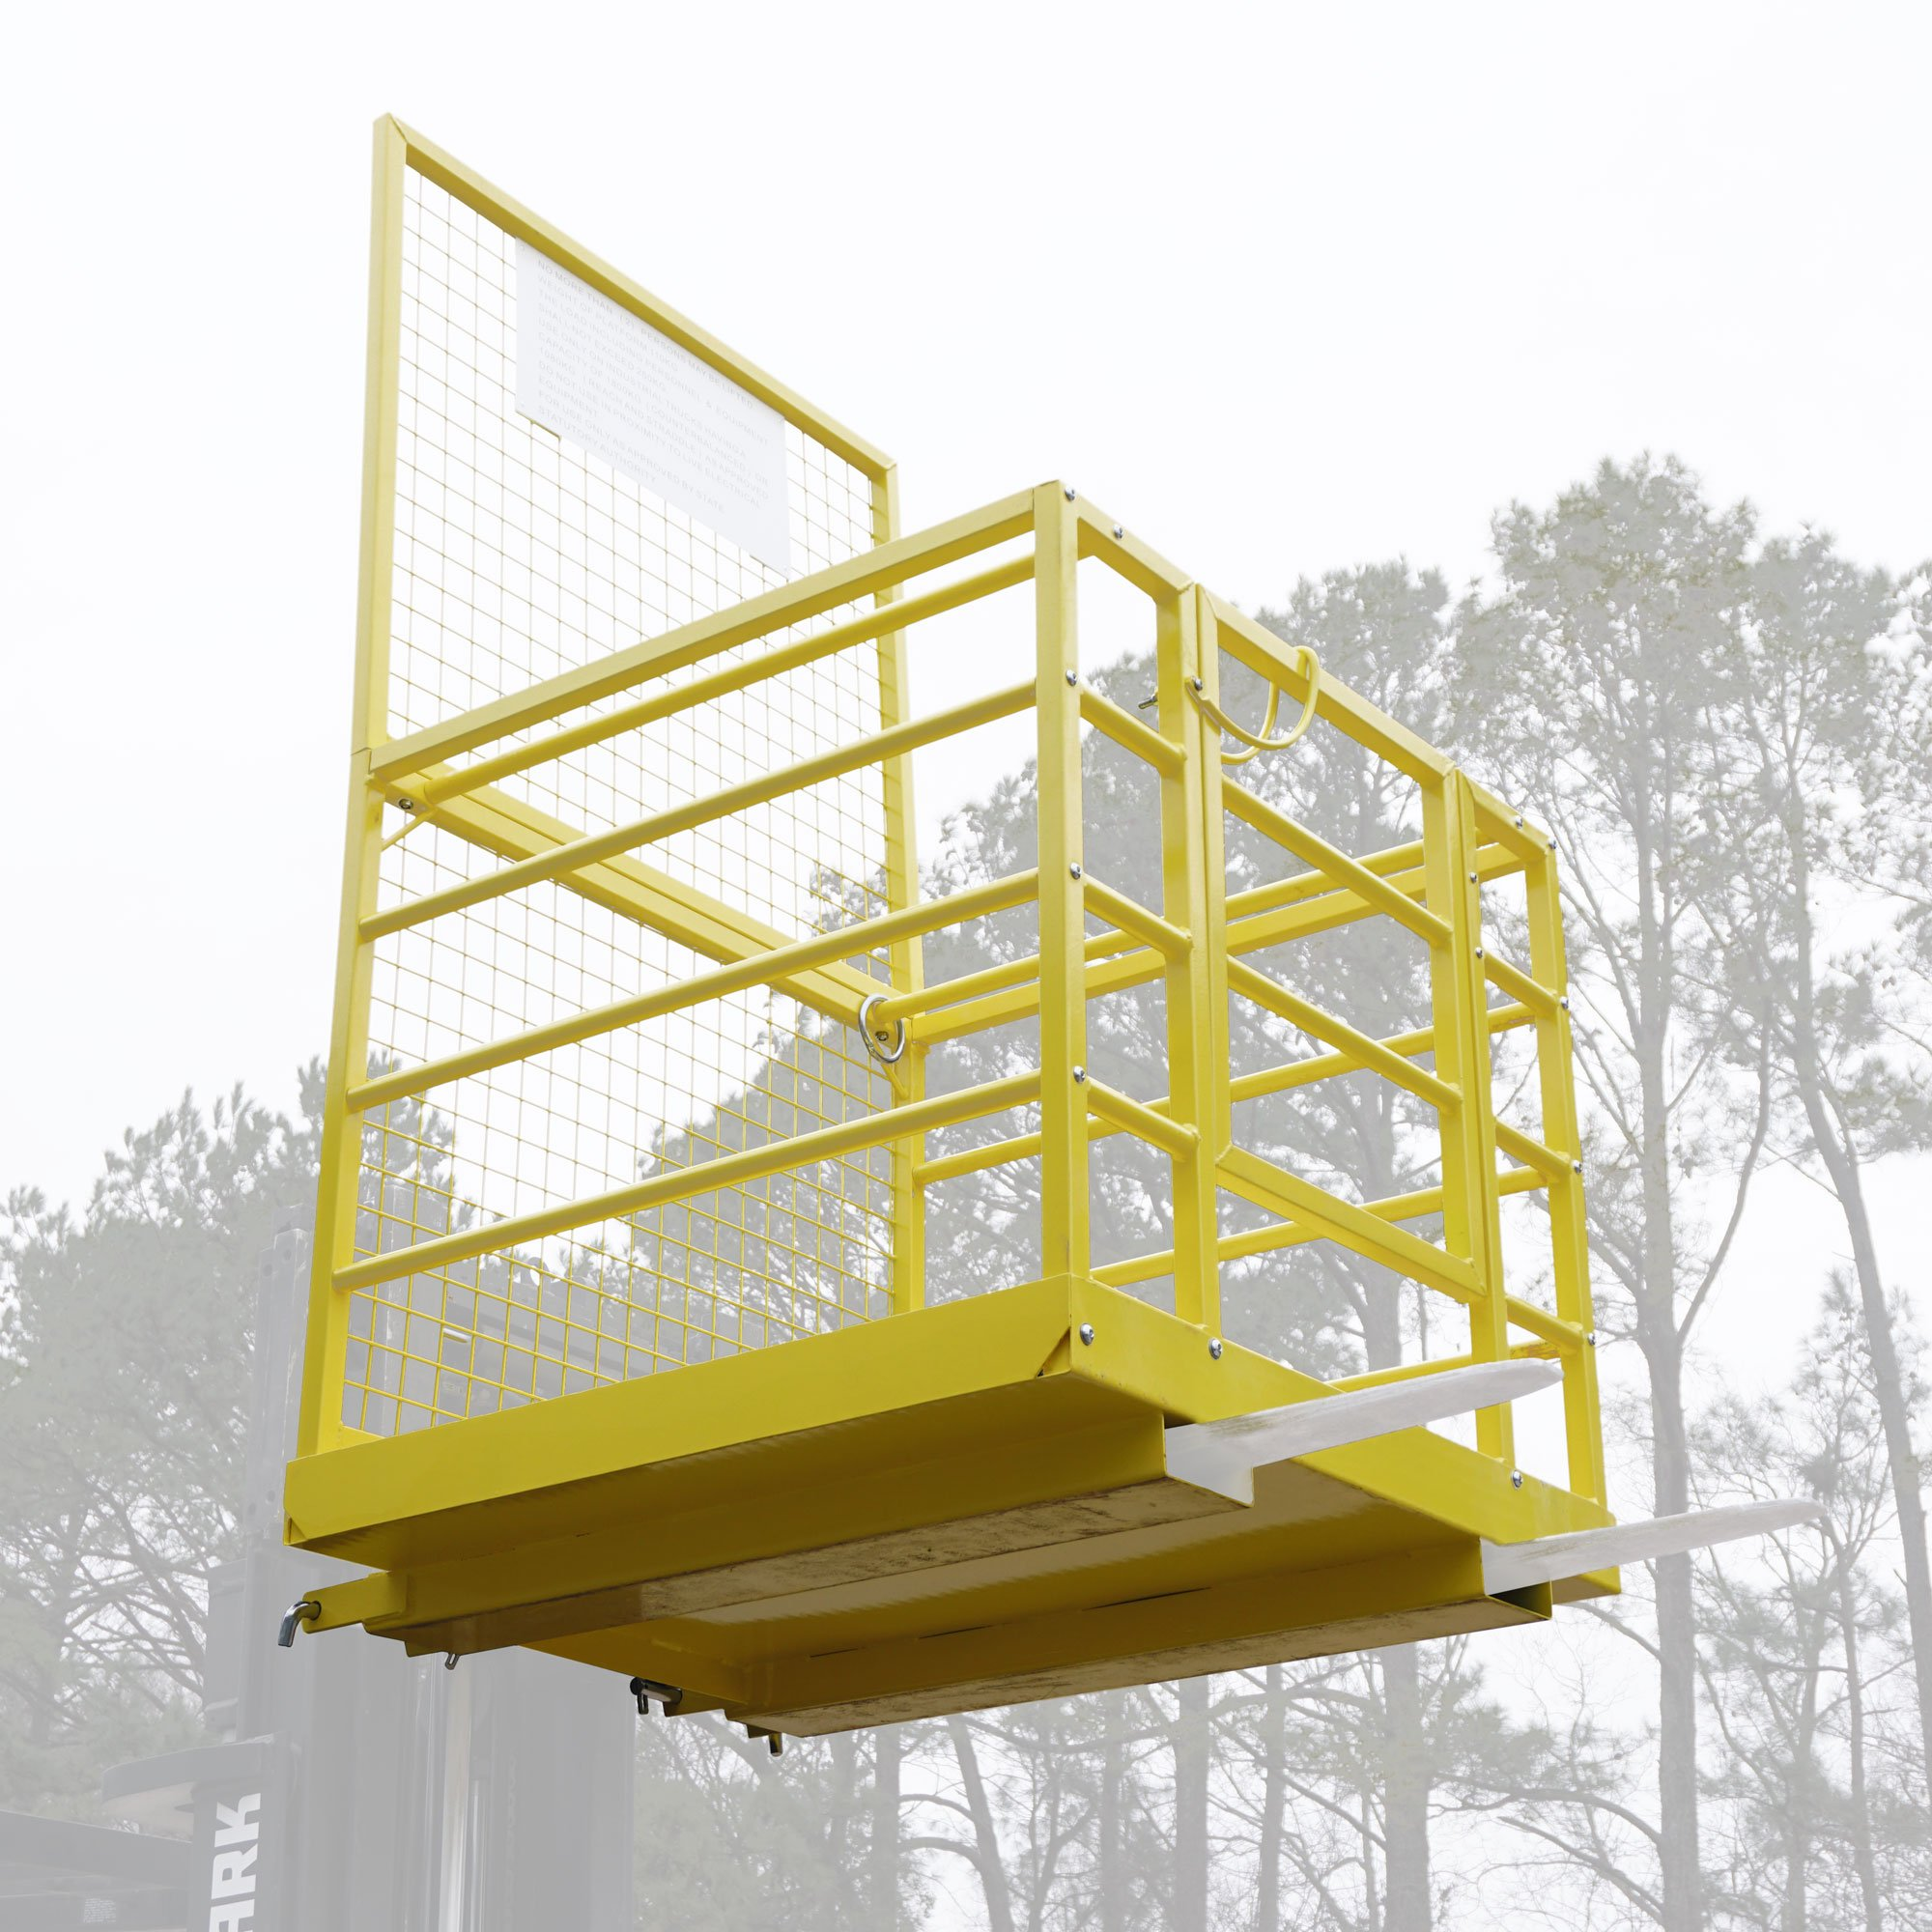 Forklift Safety Cage Work Platform Lift Basket Aerial Fence Rails Yellow 2 man by Titan Attachments (Image #6)